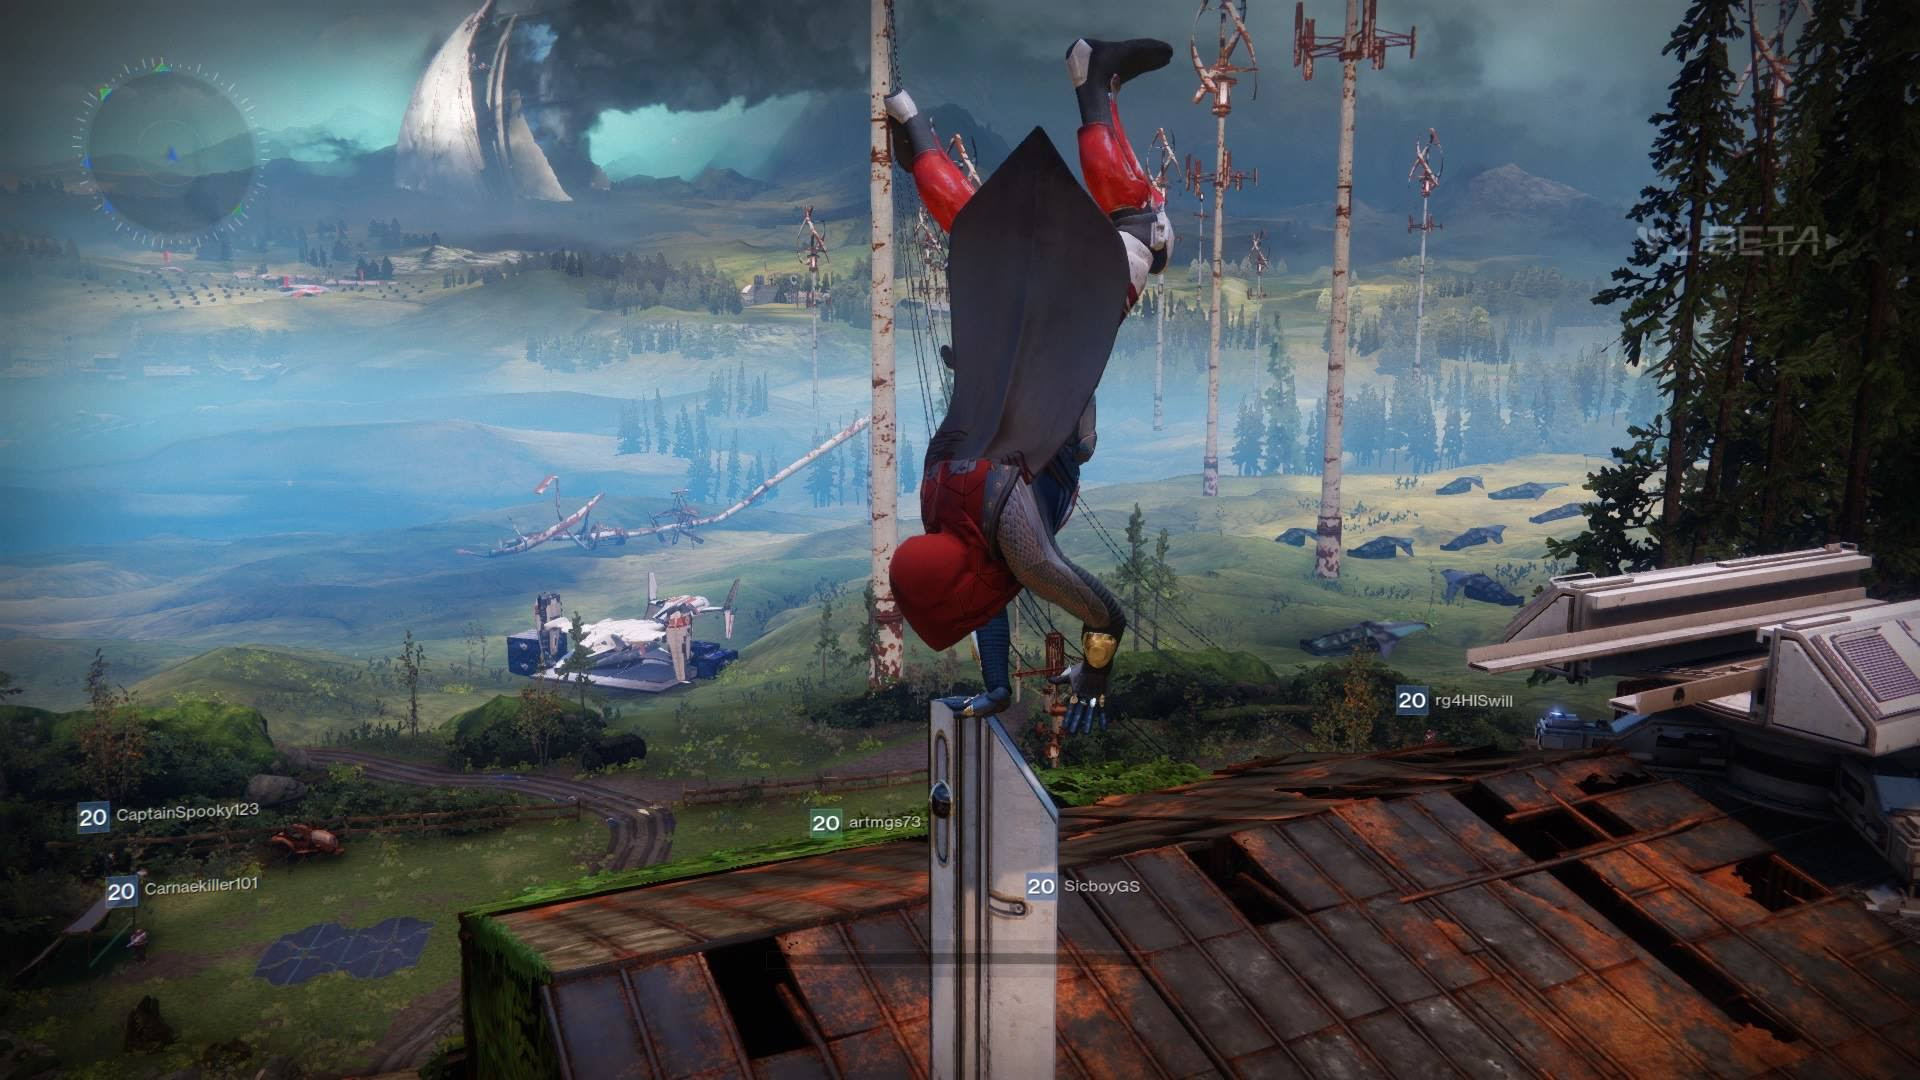 Handstanding on everything in The Farm in Destiny 2 screenshot